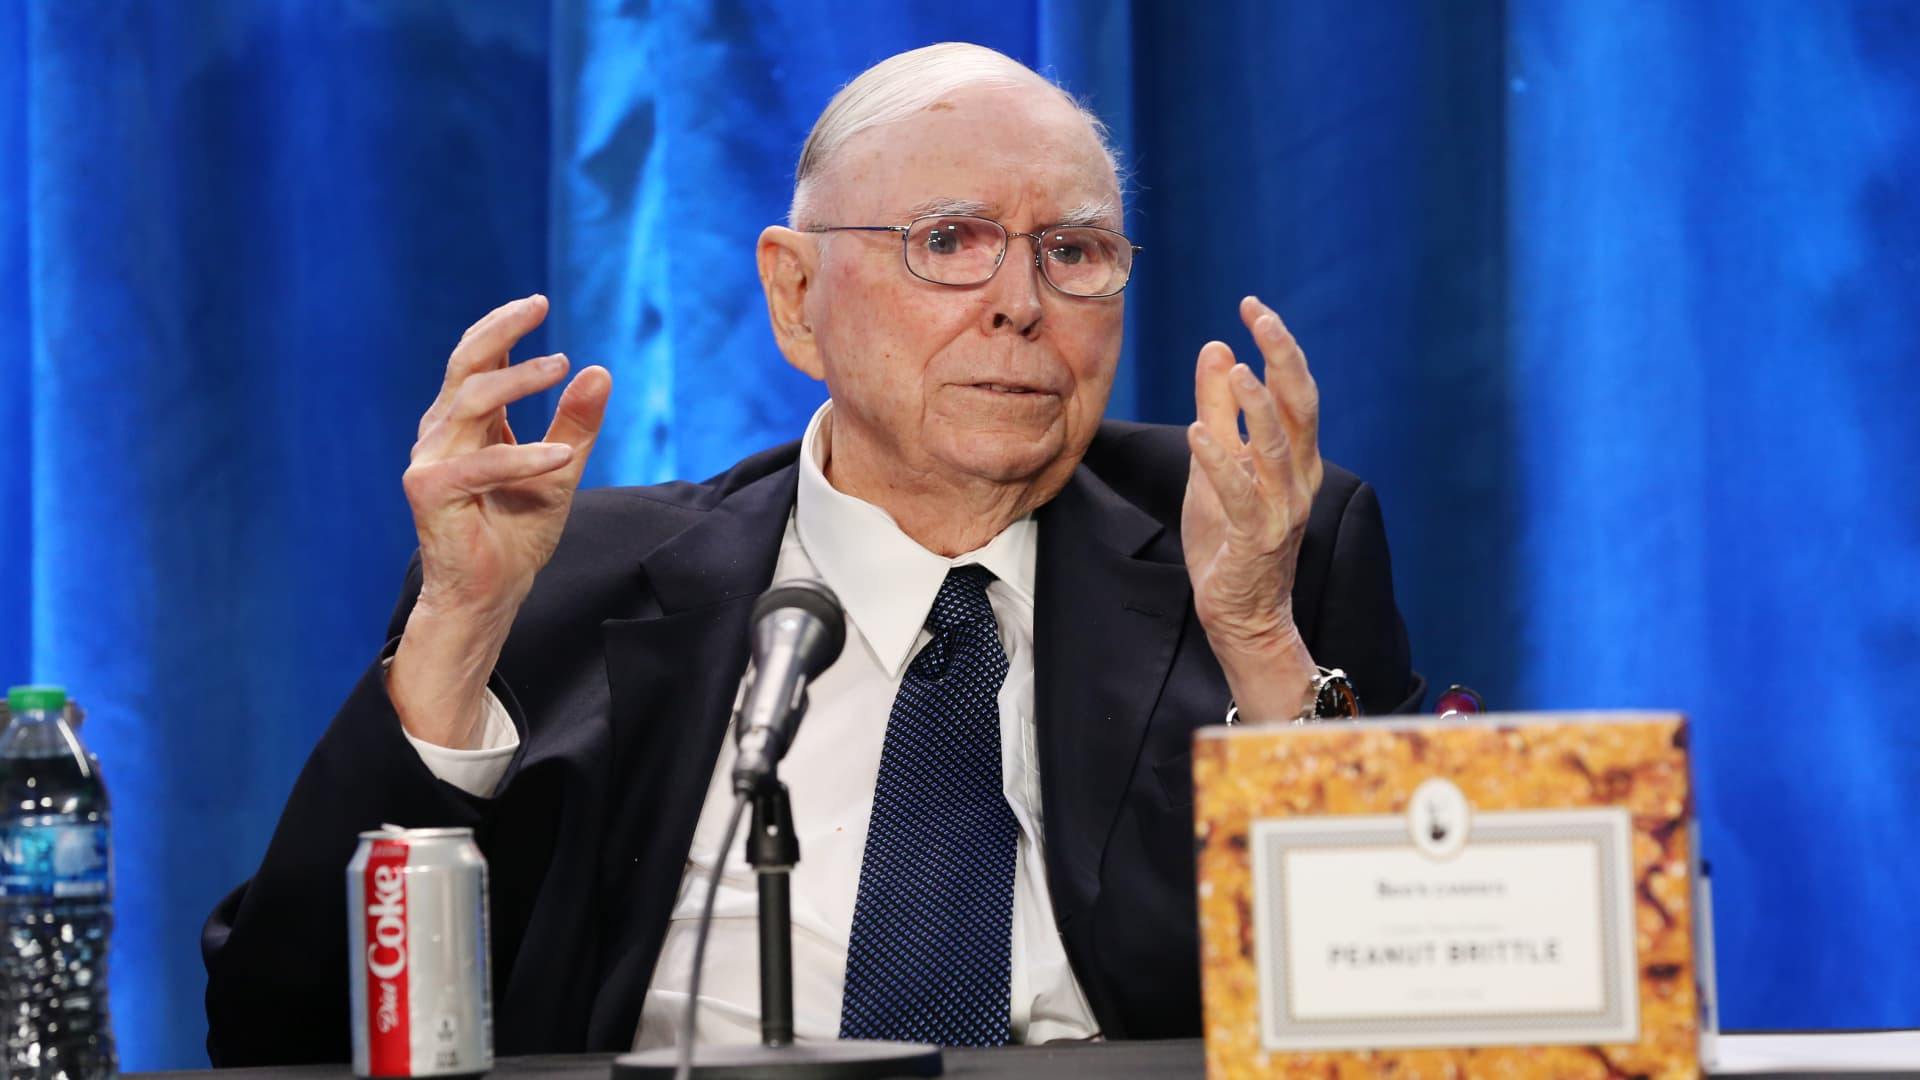 Charlie Munger at Berkshire Hathaway's annual meeting in Los Angeles California. May 1, 2021.